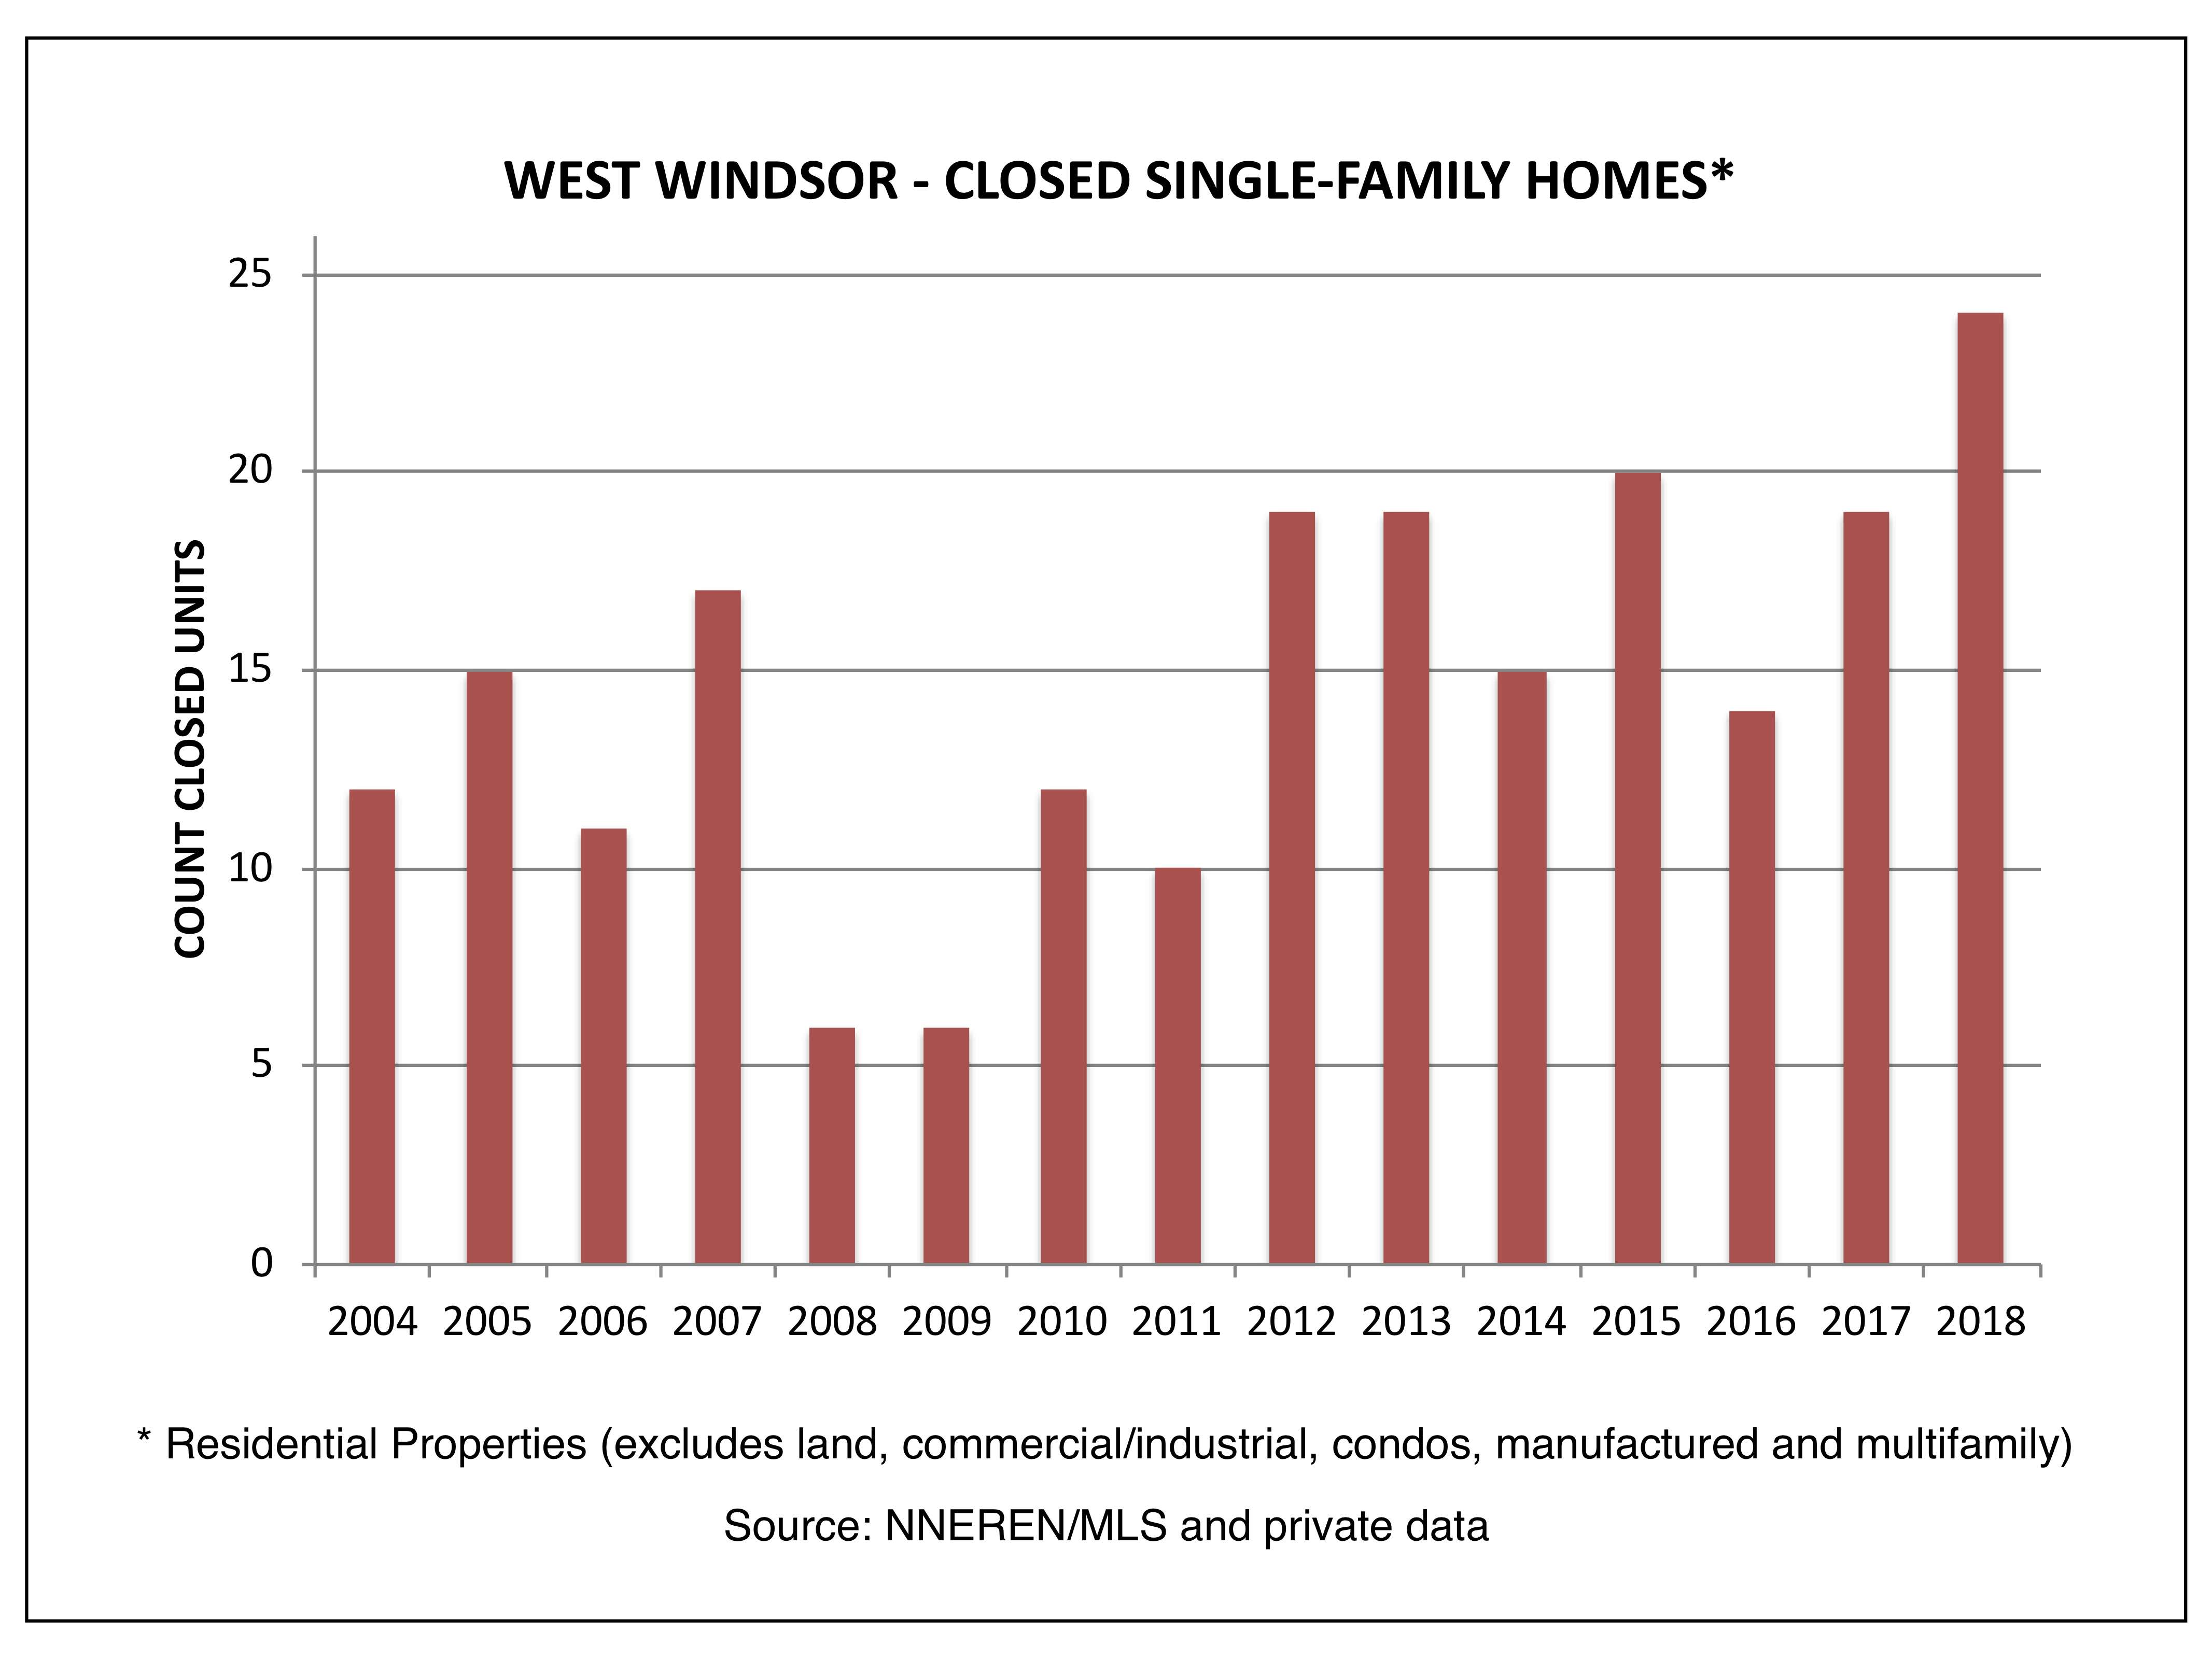 West Windsor VT Real Estate - Closed Single Family Homes